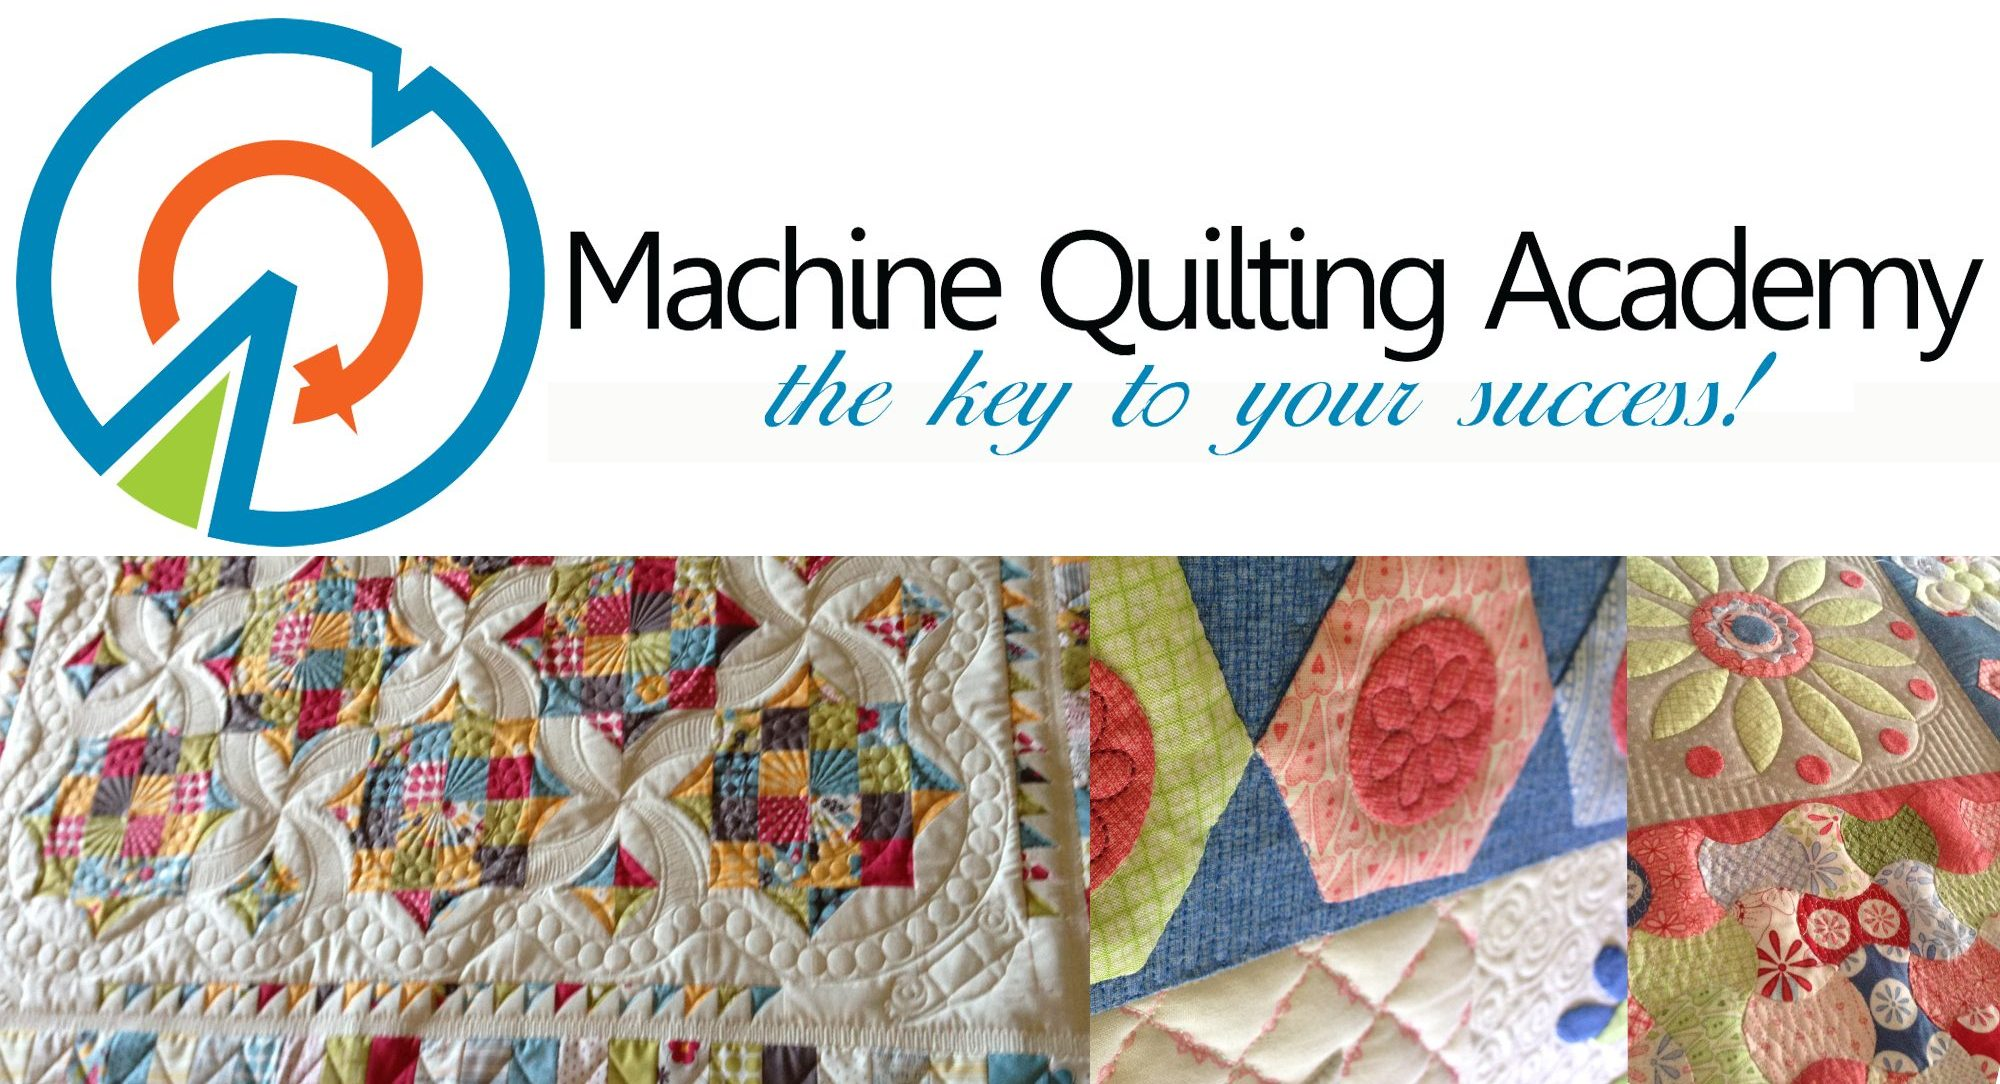 Machine Quilting Academy